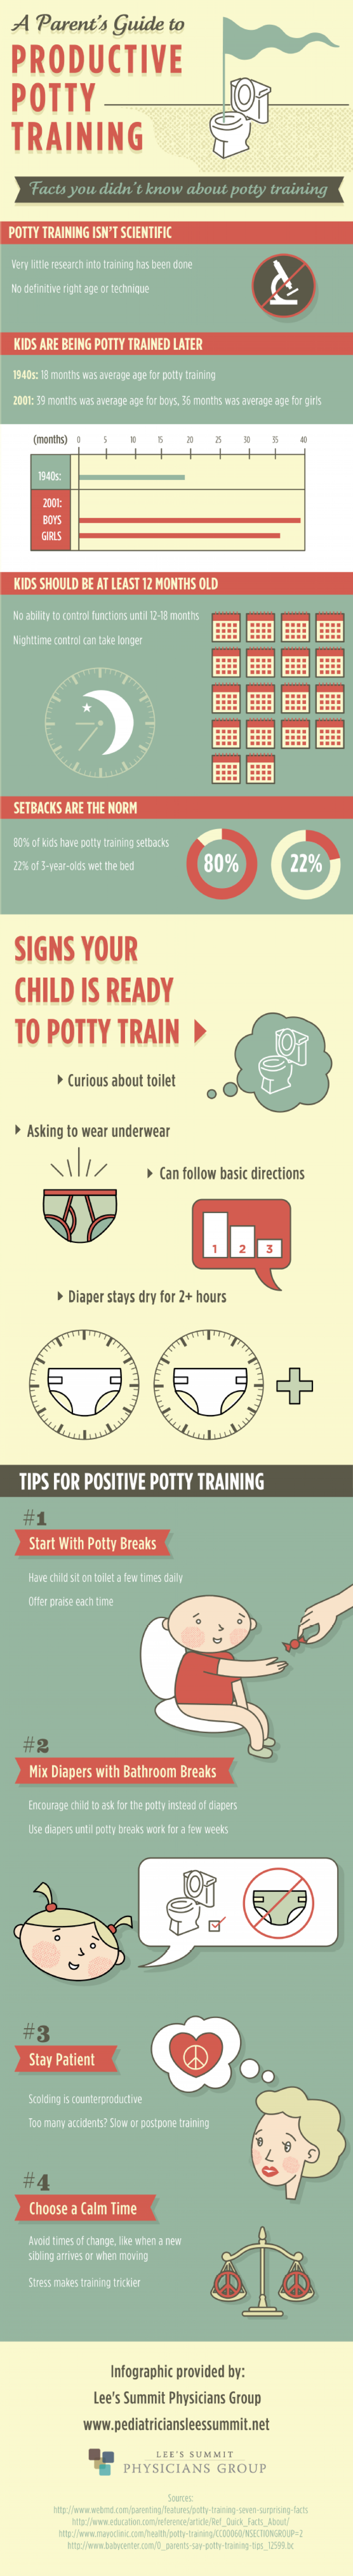 A Parent's Guide to Productive Potty Training Infographic